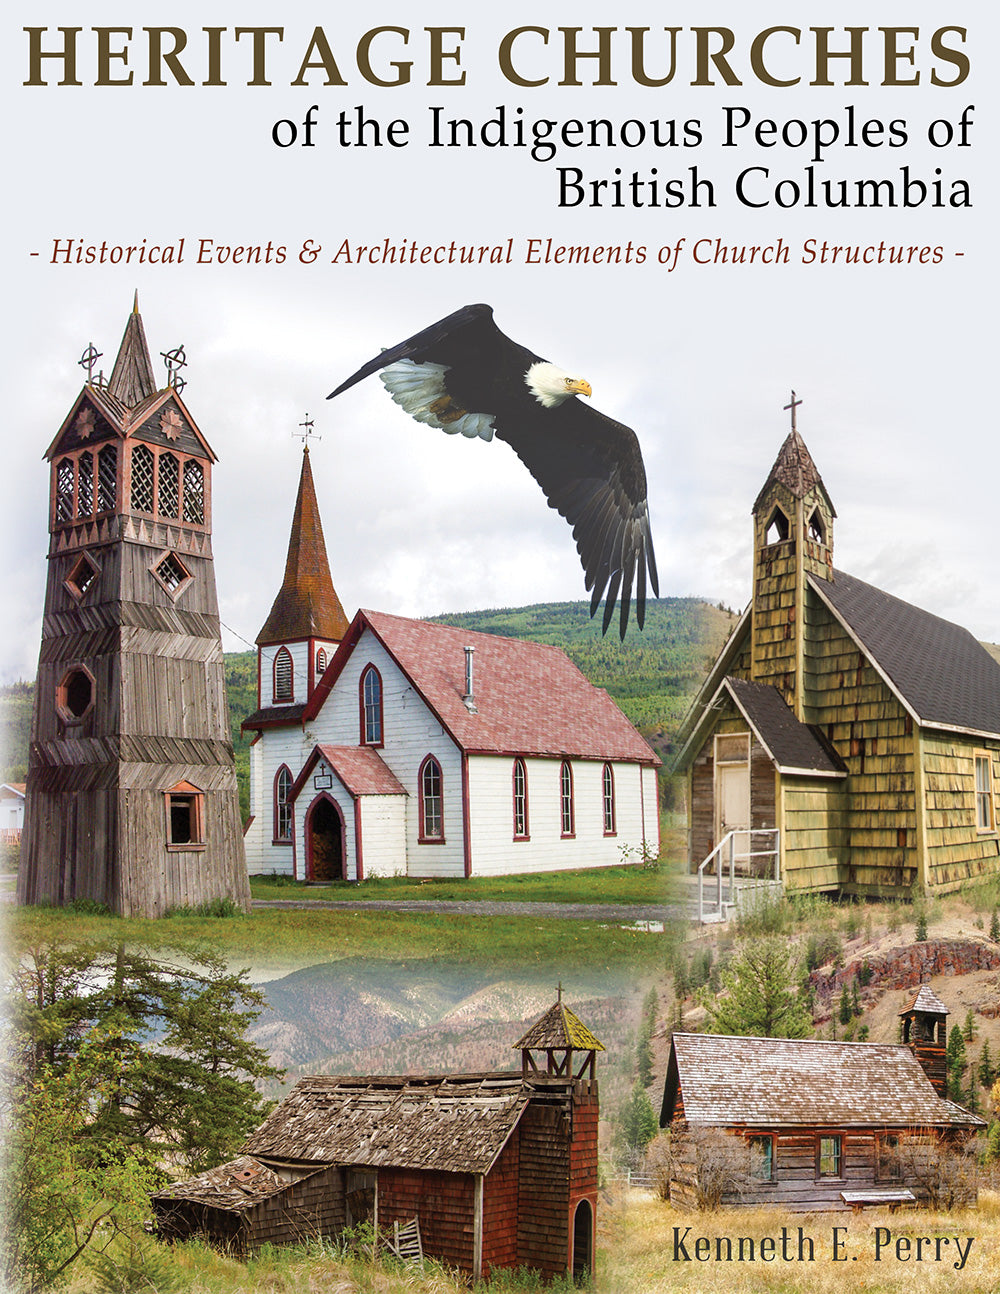 Heritage Churches of the Indigenous Peoples of British Columbia: Historical Events & Architectural Elements of Church Structures